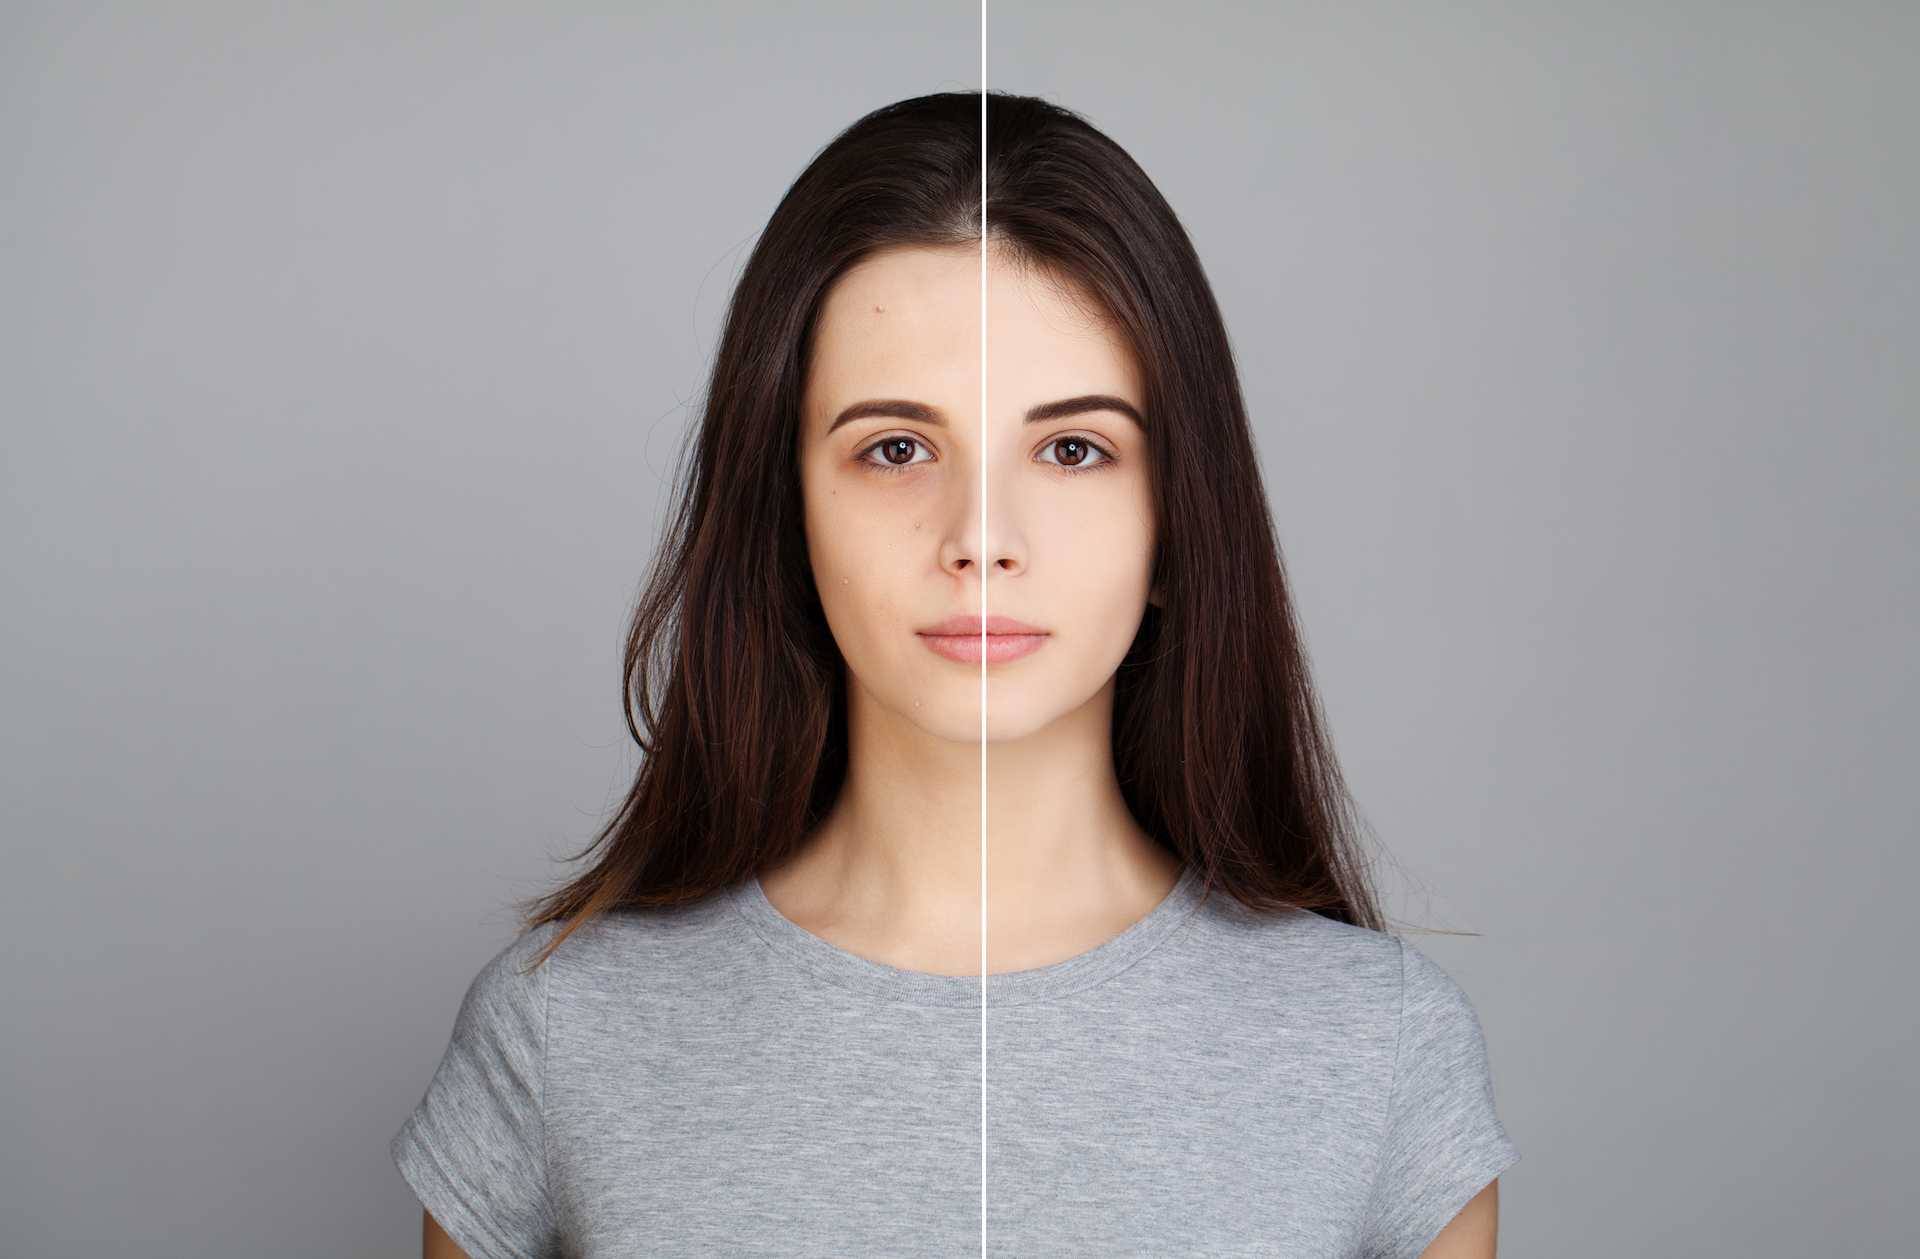 Enlarged Pores Treatments